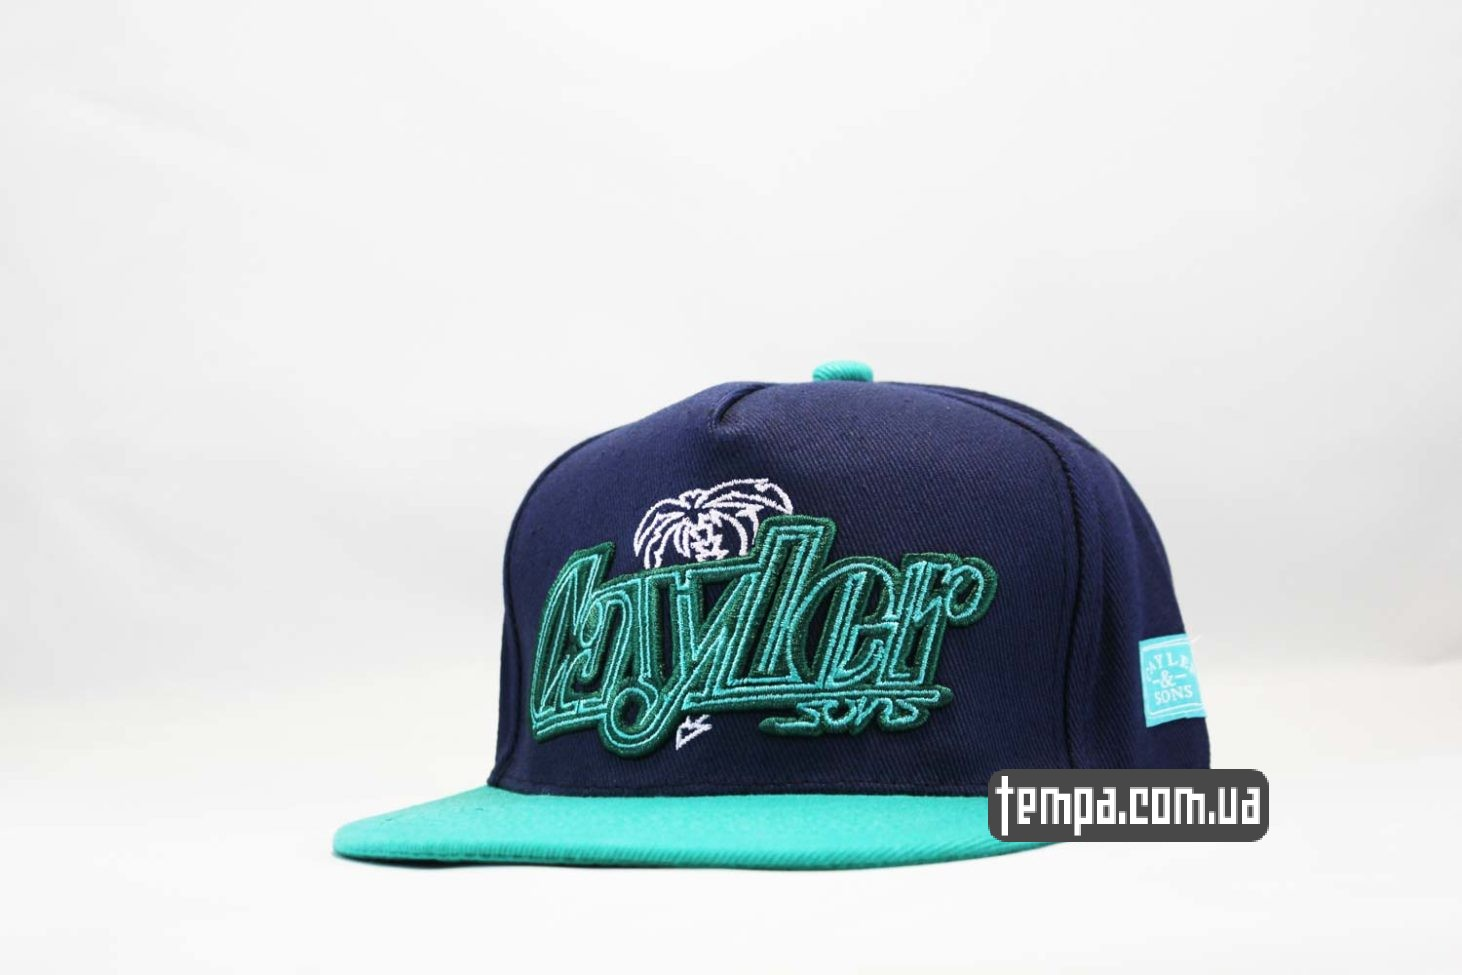 кепка snapback cayler and sons los angeles синяя зеленая